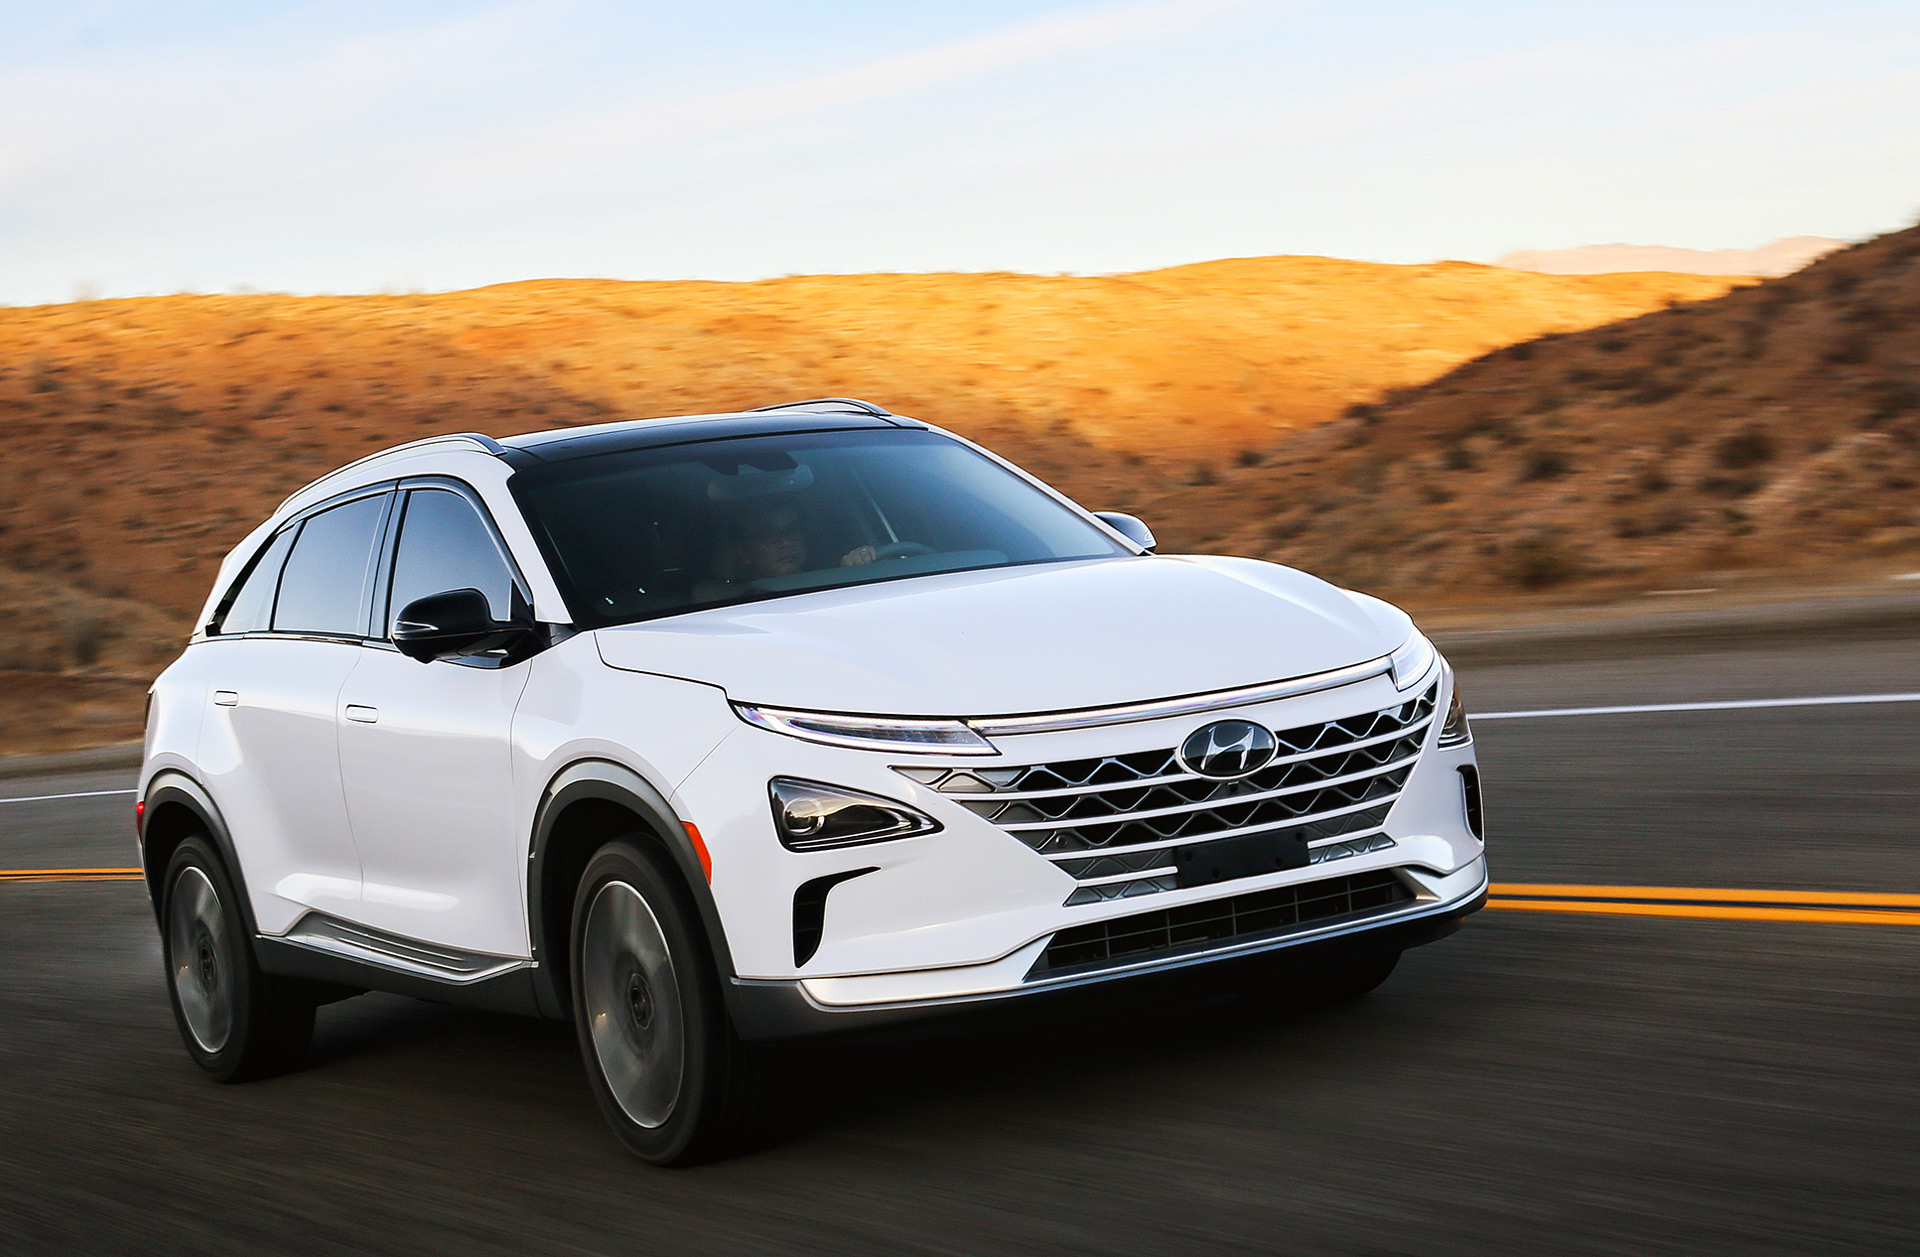 Hyundai and Audi partner on hydrogen fuel cell tech